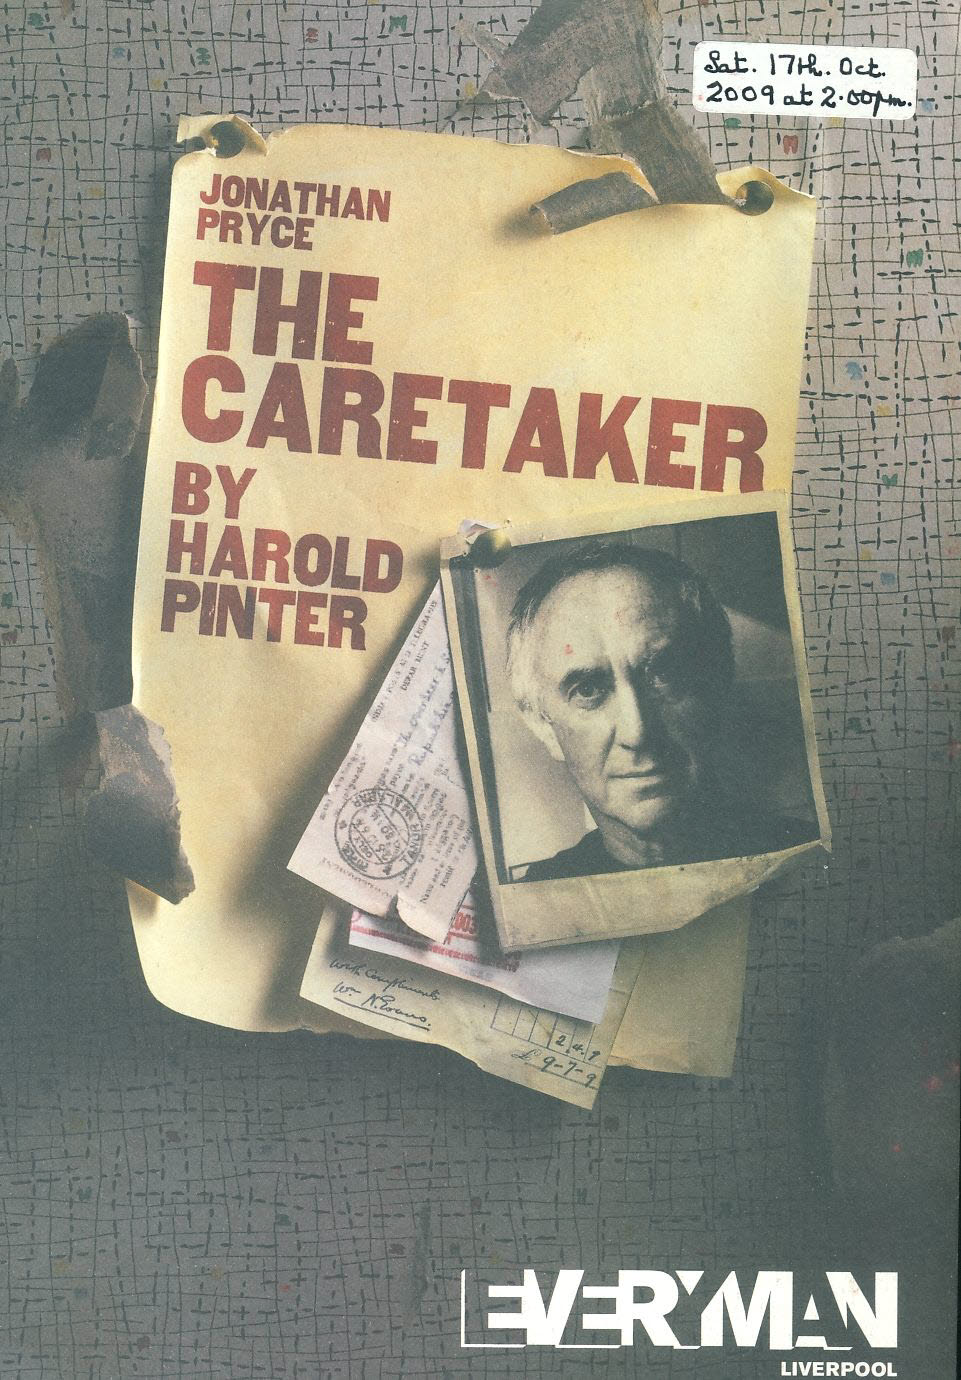 The Caretaker by Harold Pinter JONATHAN PRYCE 2009 Everyman Theatre Programme refb1512 Measures approx 17cm x 24cm. Date label on cover.